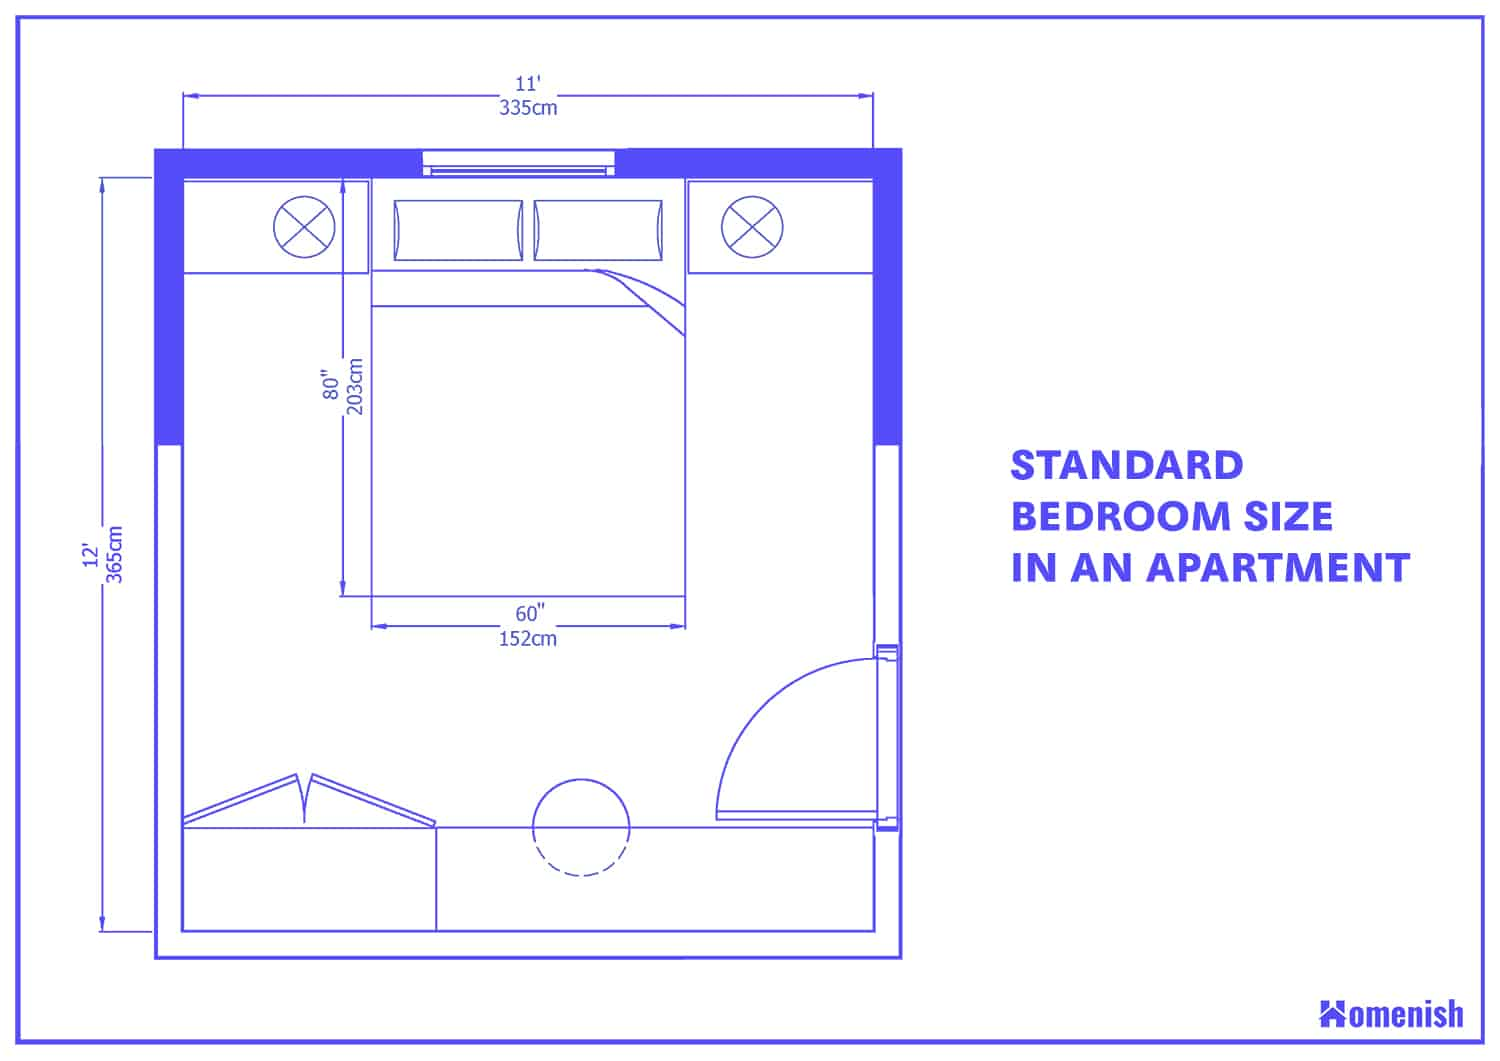 Average Bedroom Size For 9 Bedroom Layouts With Diagrams Homenish